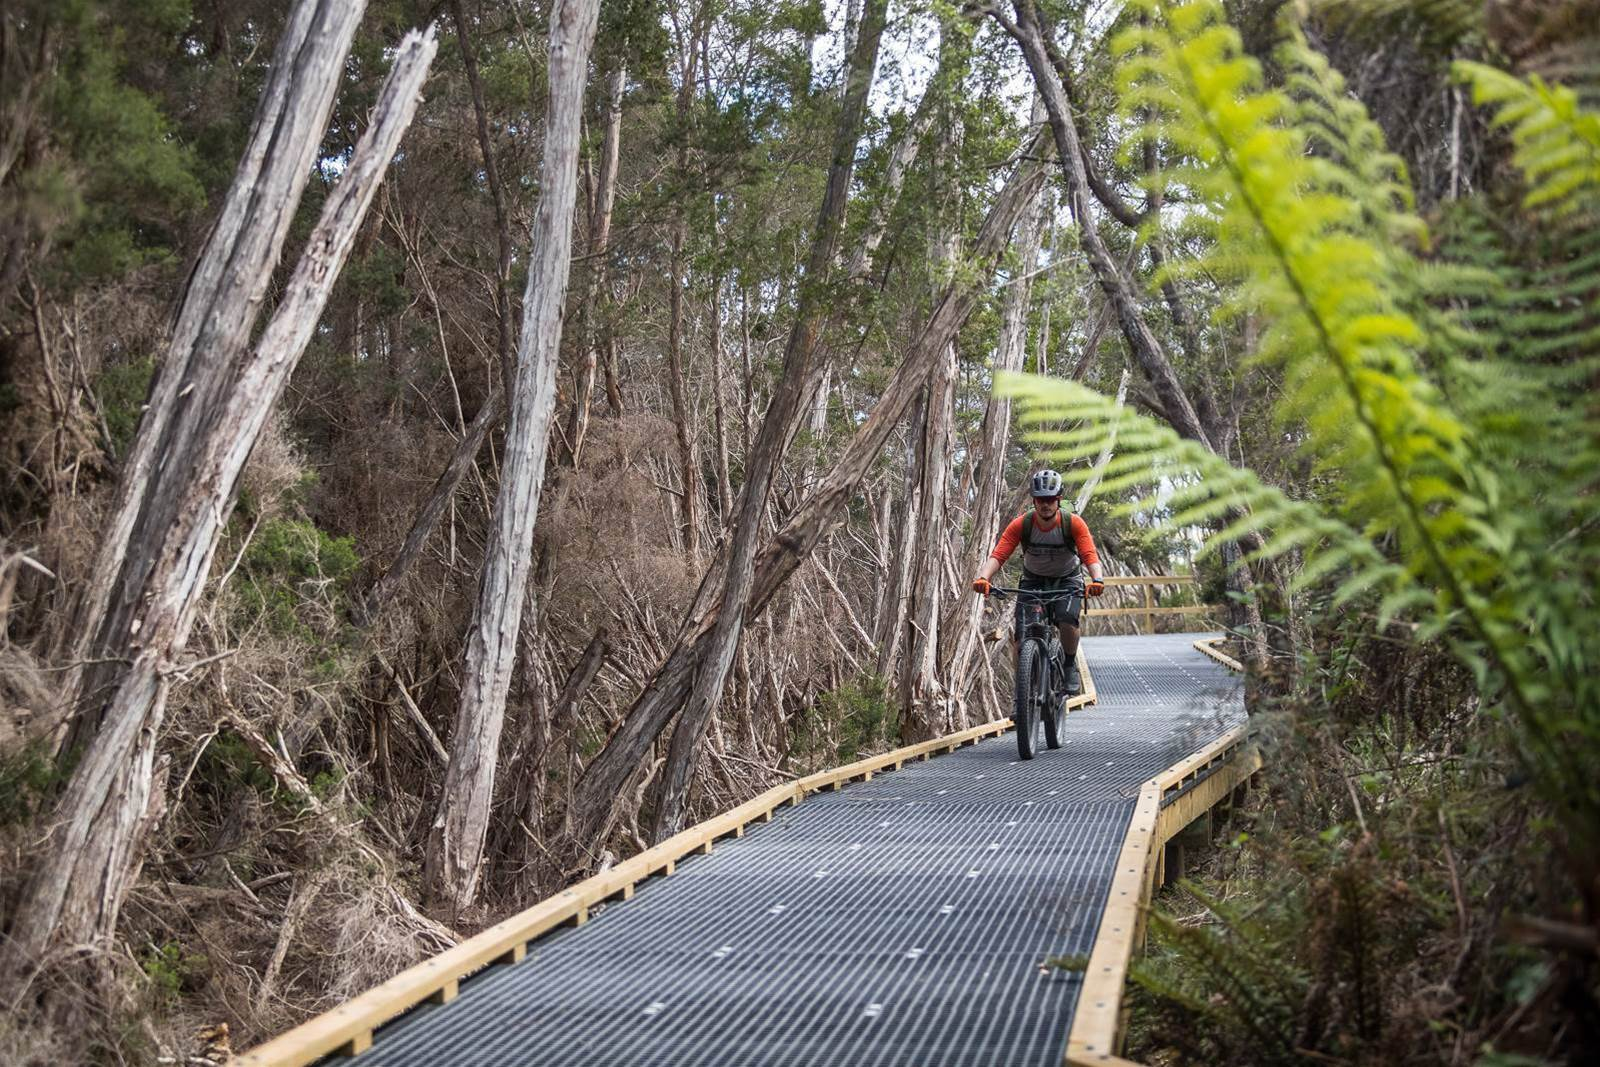 The Town Link trail is 3.8km of mixed grates and single track that takes you from town right to the trailhead.